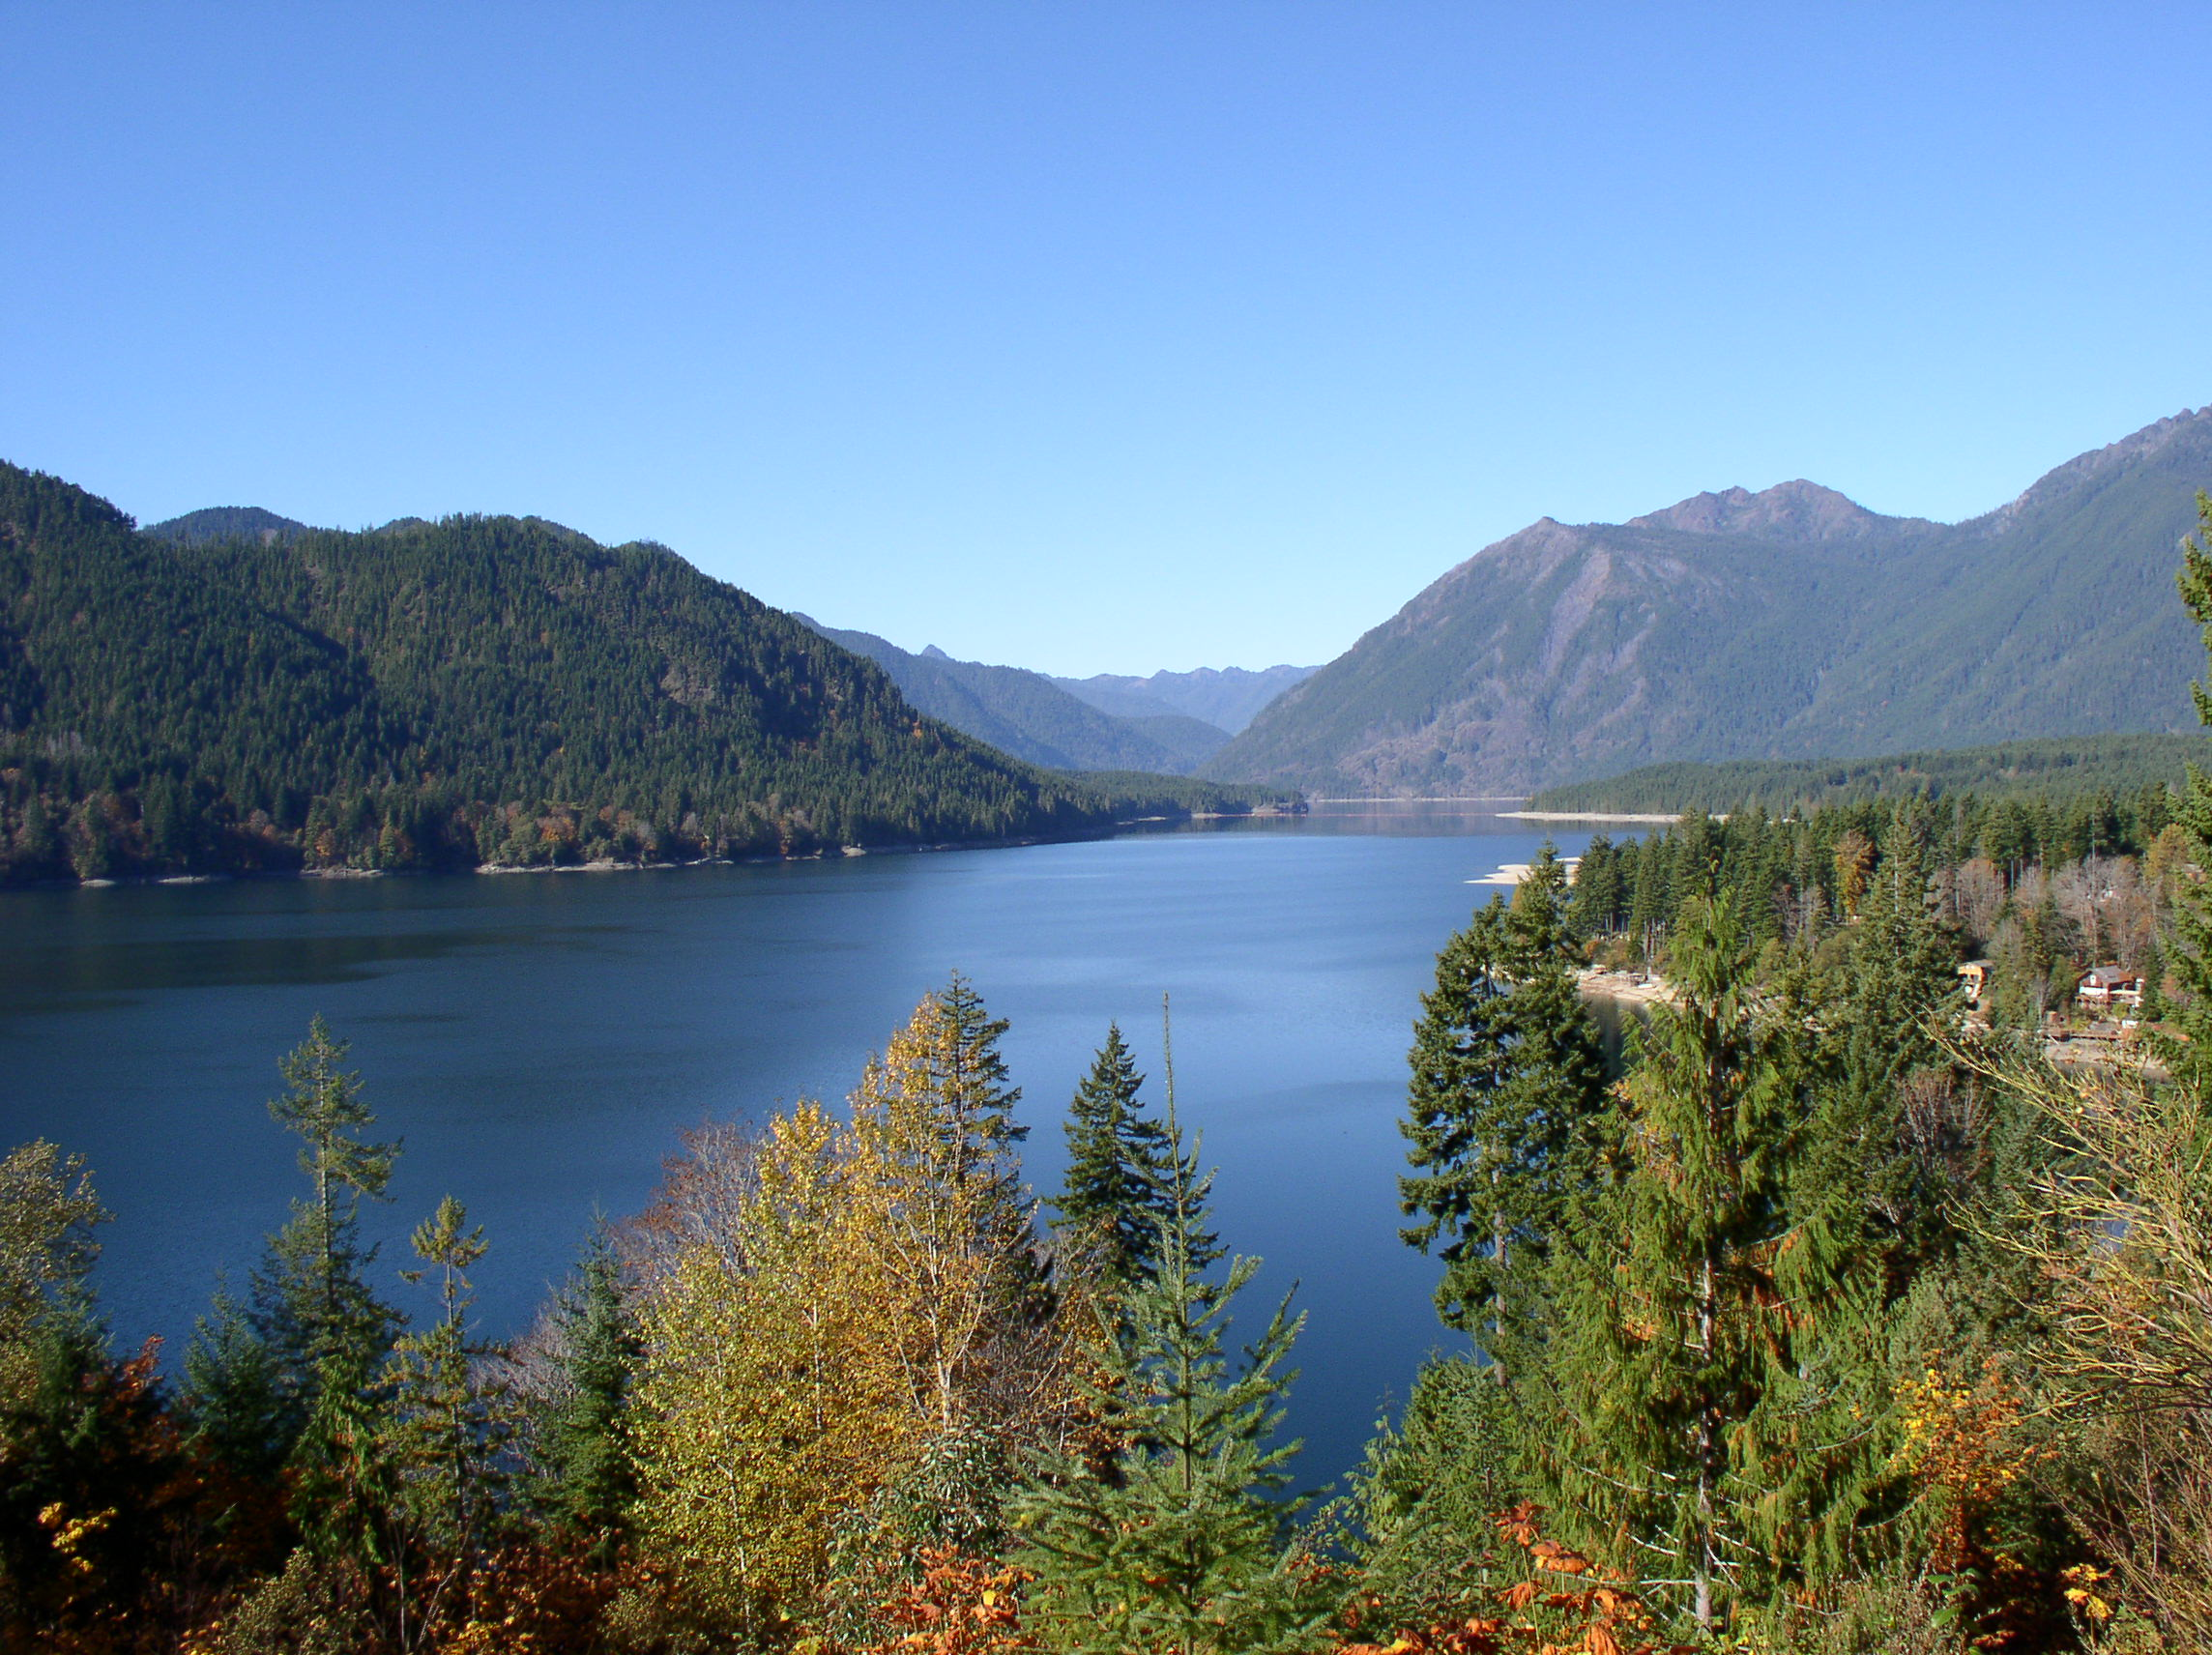 Lake Cushman, Olympic Peninsula, Washington